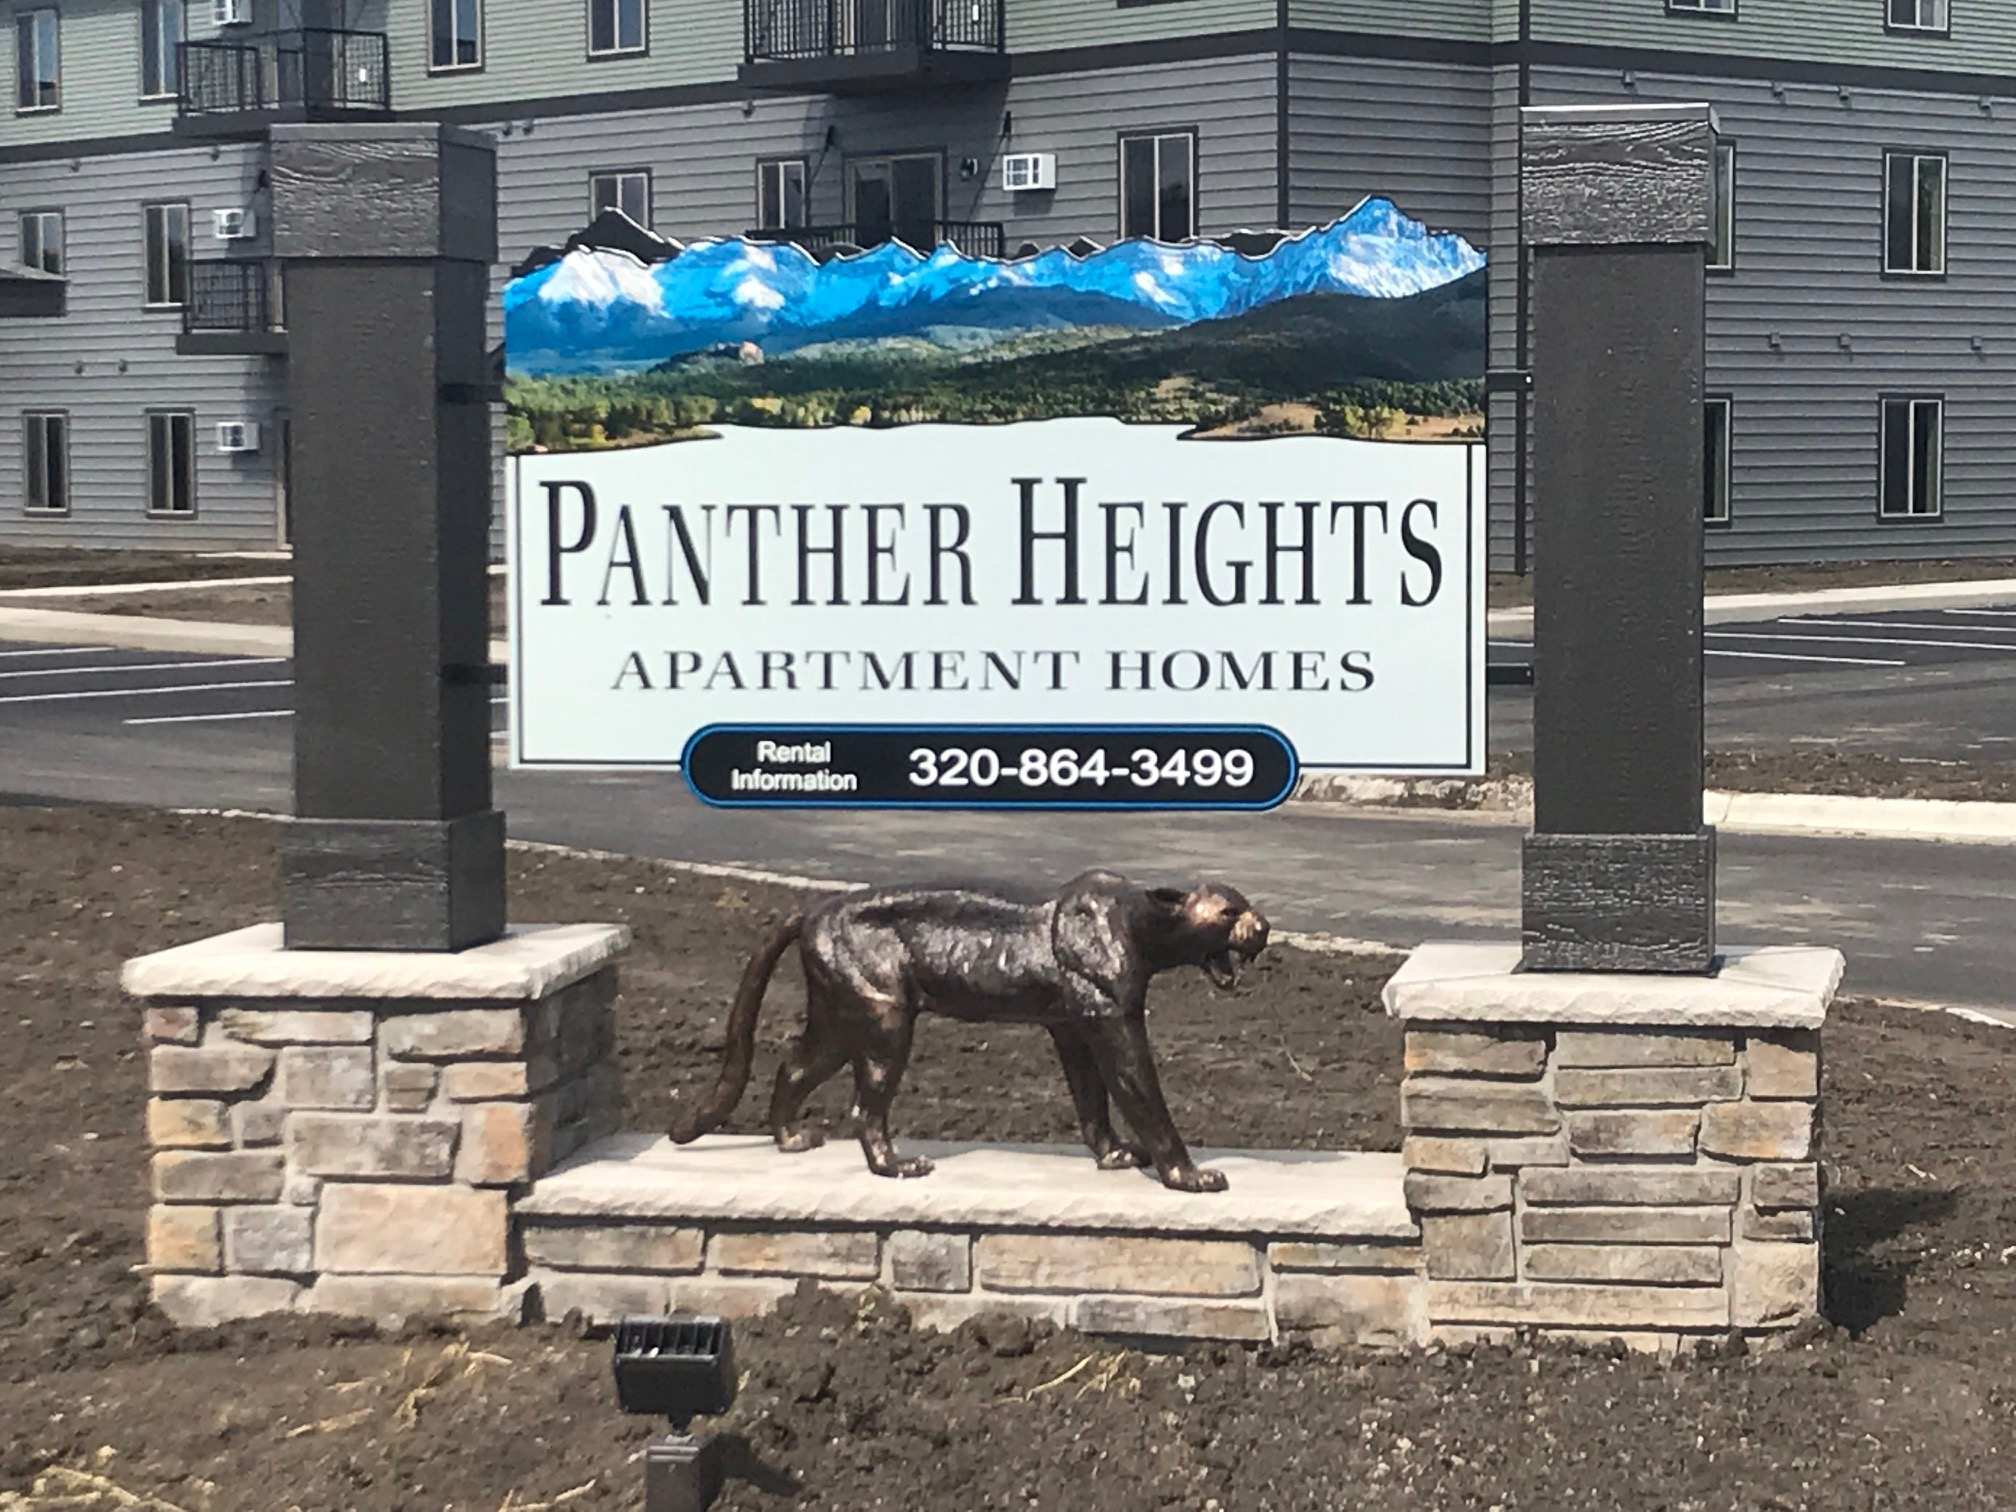 PANTHER HEIGHTS APARTMENTS